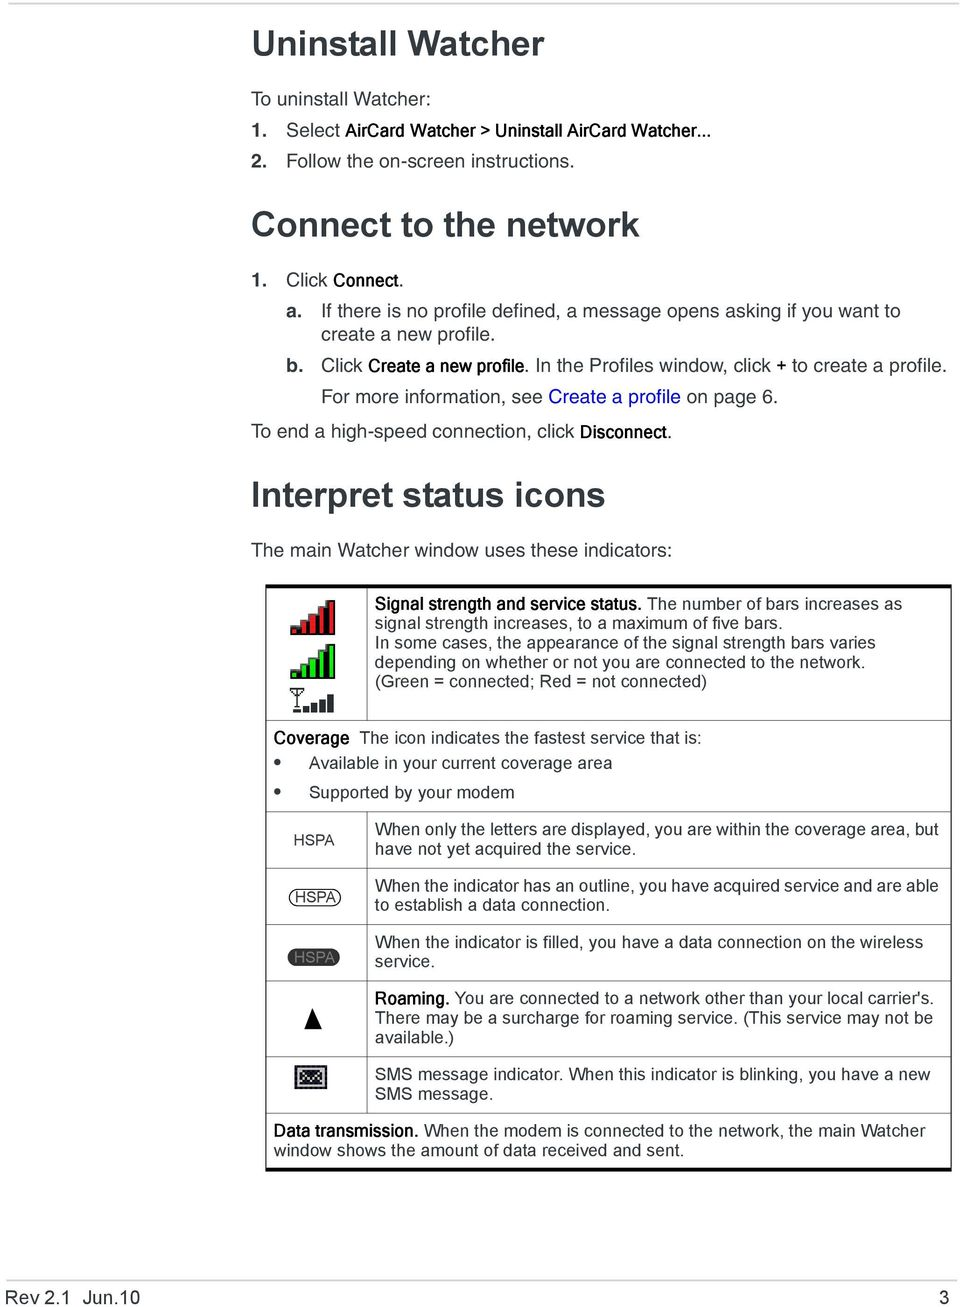 For more information, see Create a profile on page 6. To end a high-speed connection, click Disconnect.